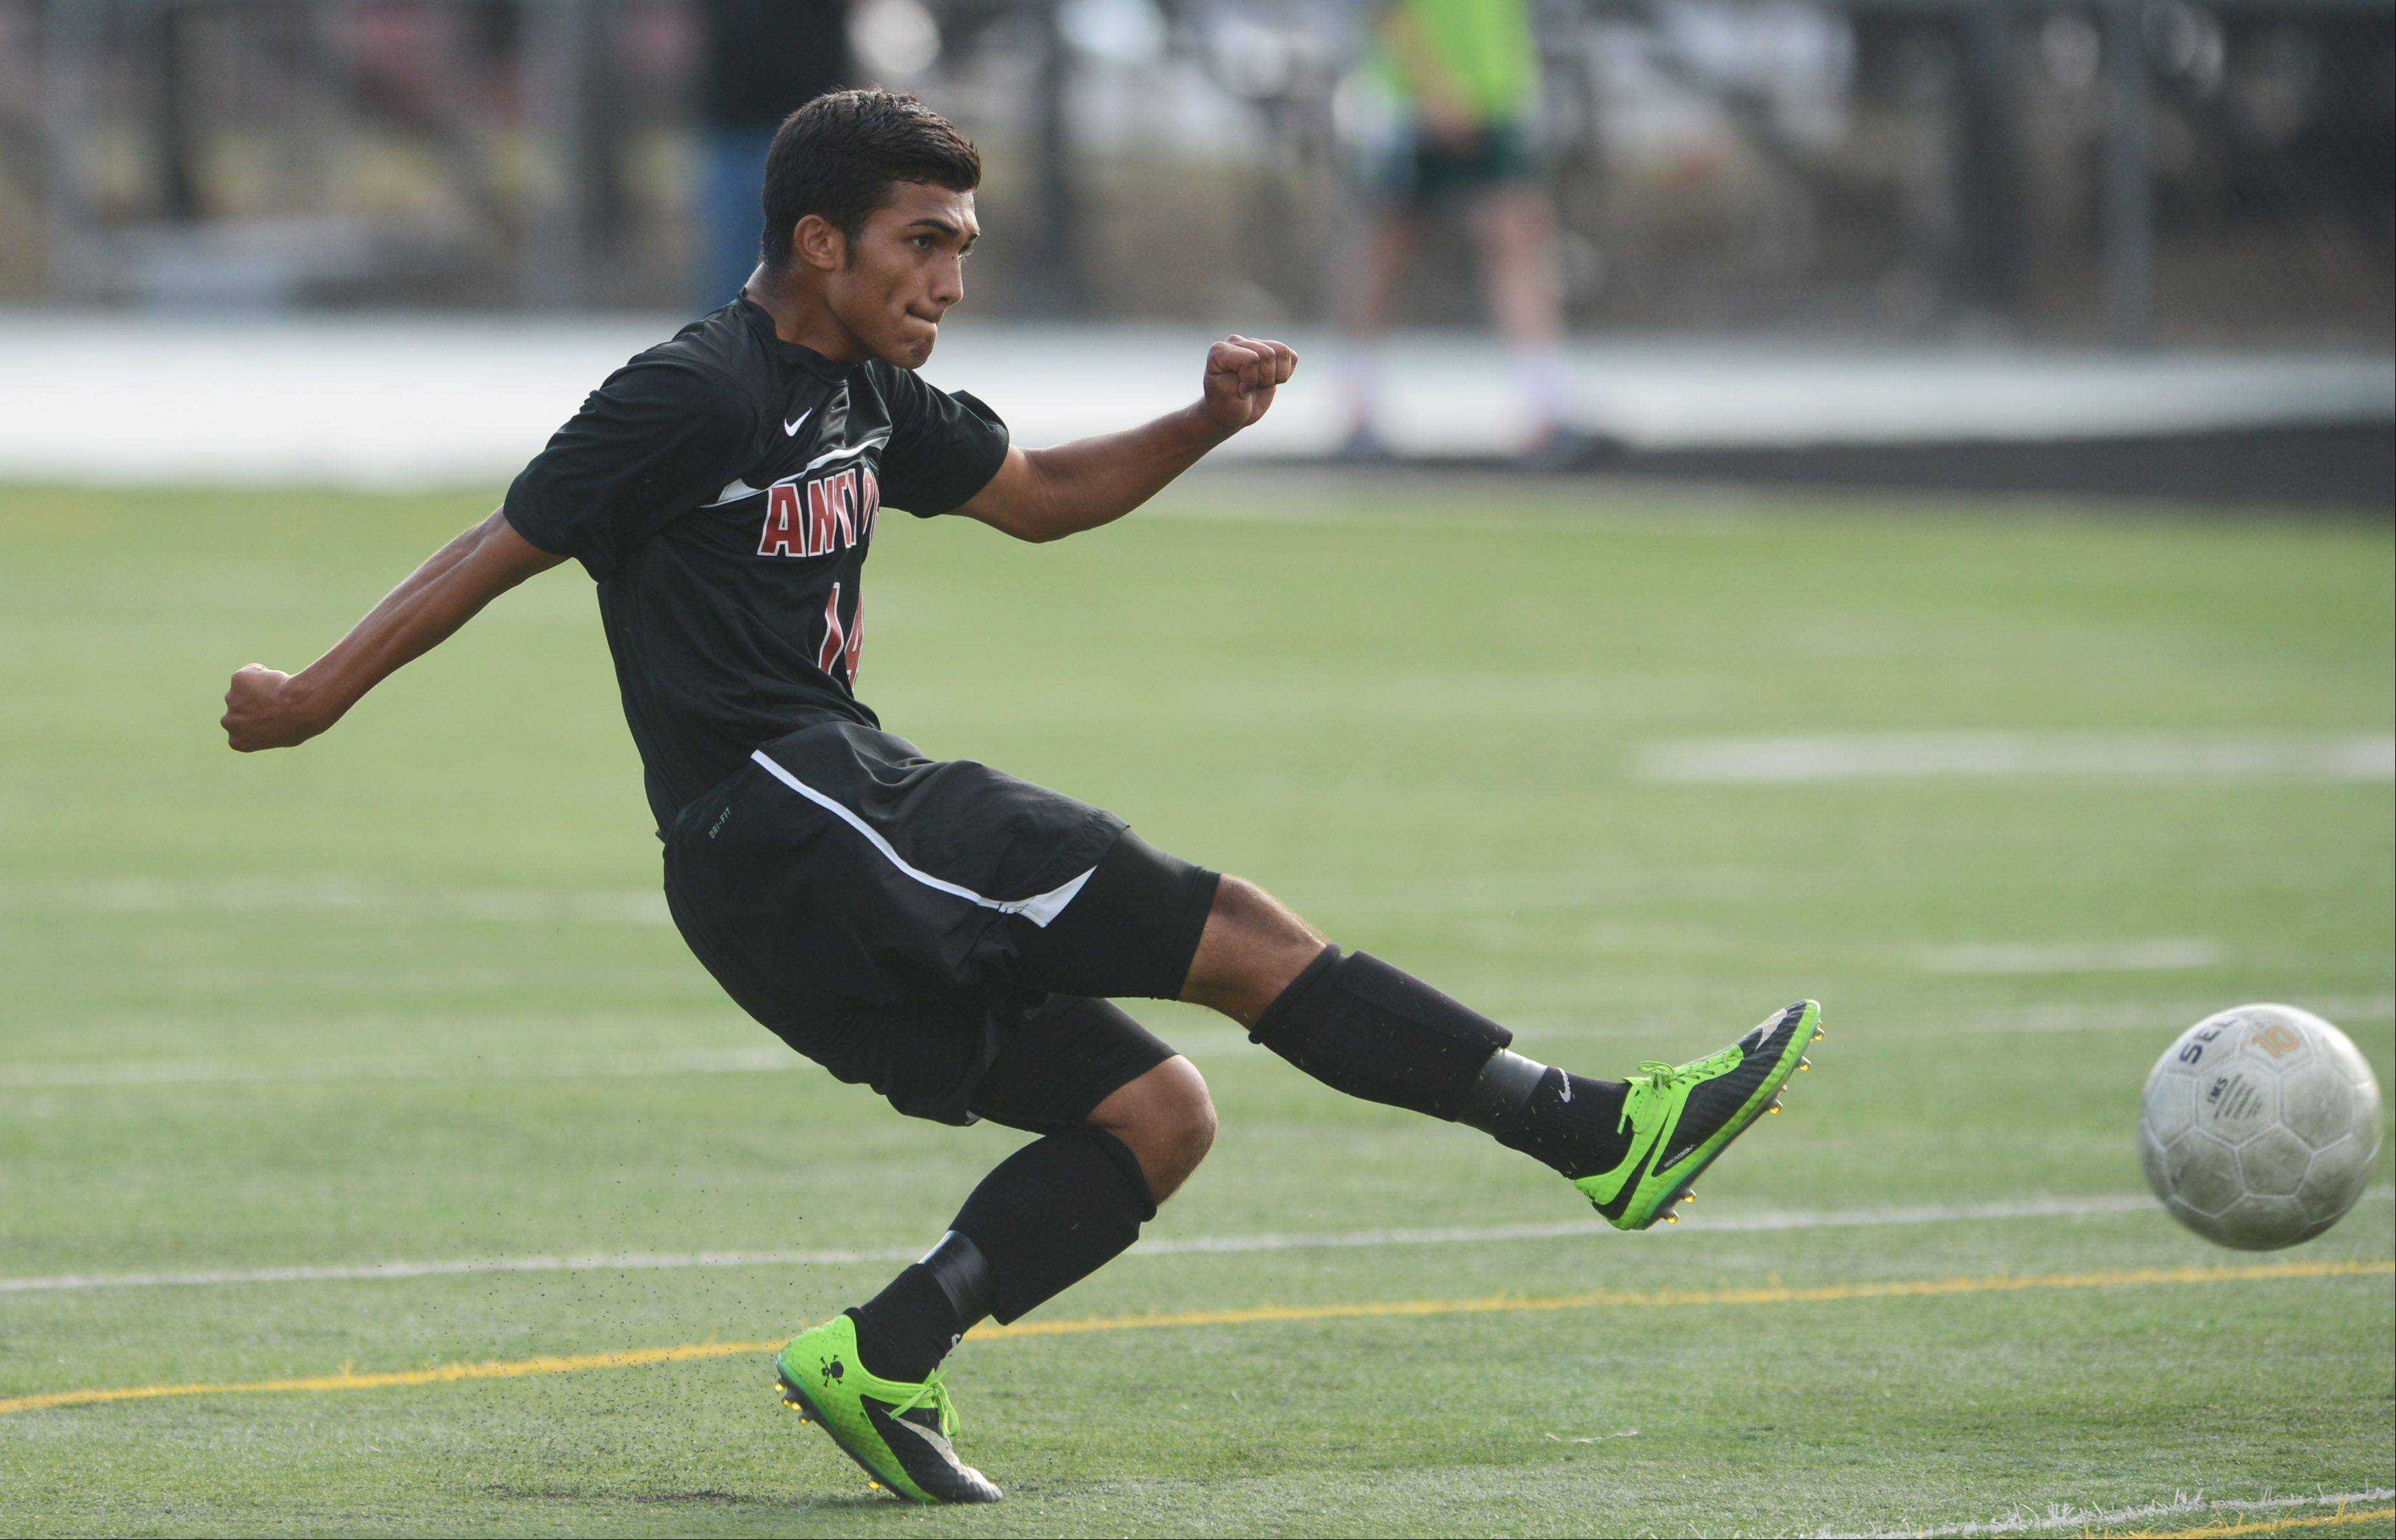 Antioch's Iven Hernandez puts a shot on goal against Grayslake Central on Wednesday.